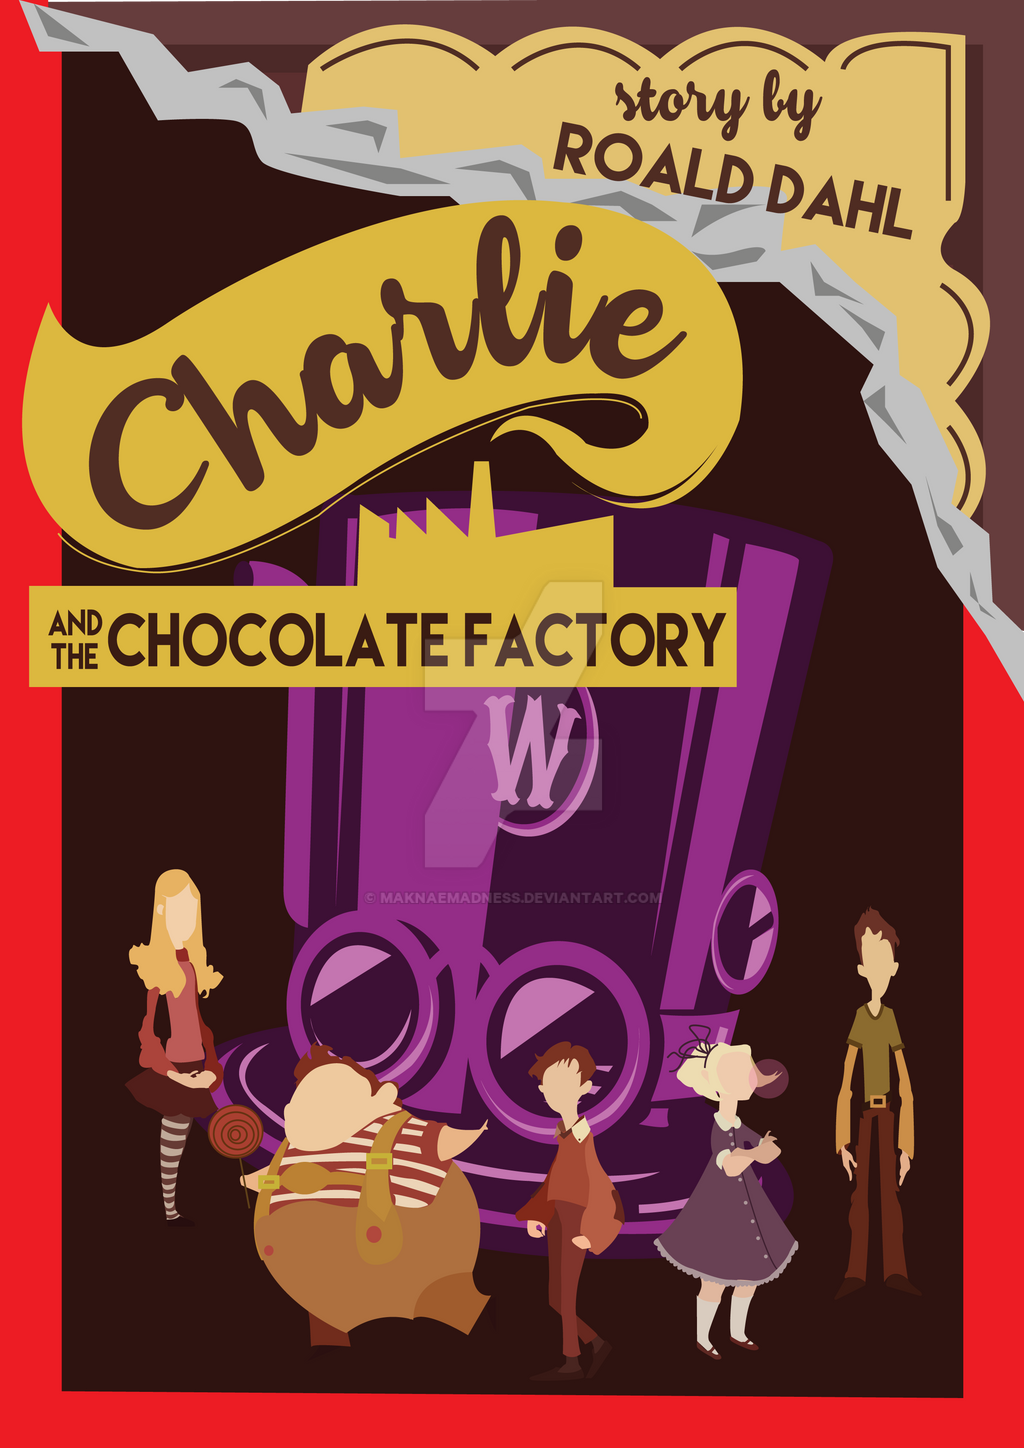 charlie and the chocolate factory analysis Immediately download the charlie and the chocolate factory summary, chapter-by-chapter analysis, book notes, essays, quotes, character descriptions, lesson plans, and more - everything you need for studying or teaching charlie and the chocolate factory.